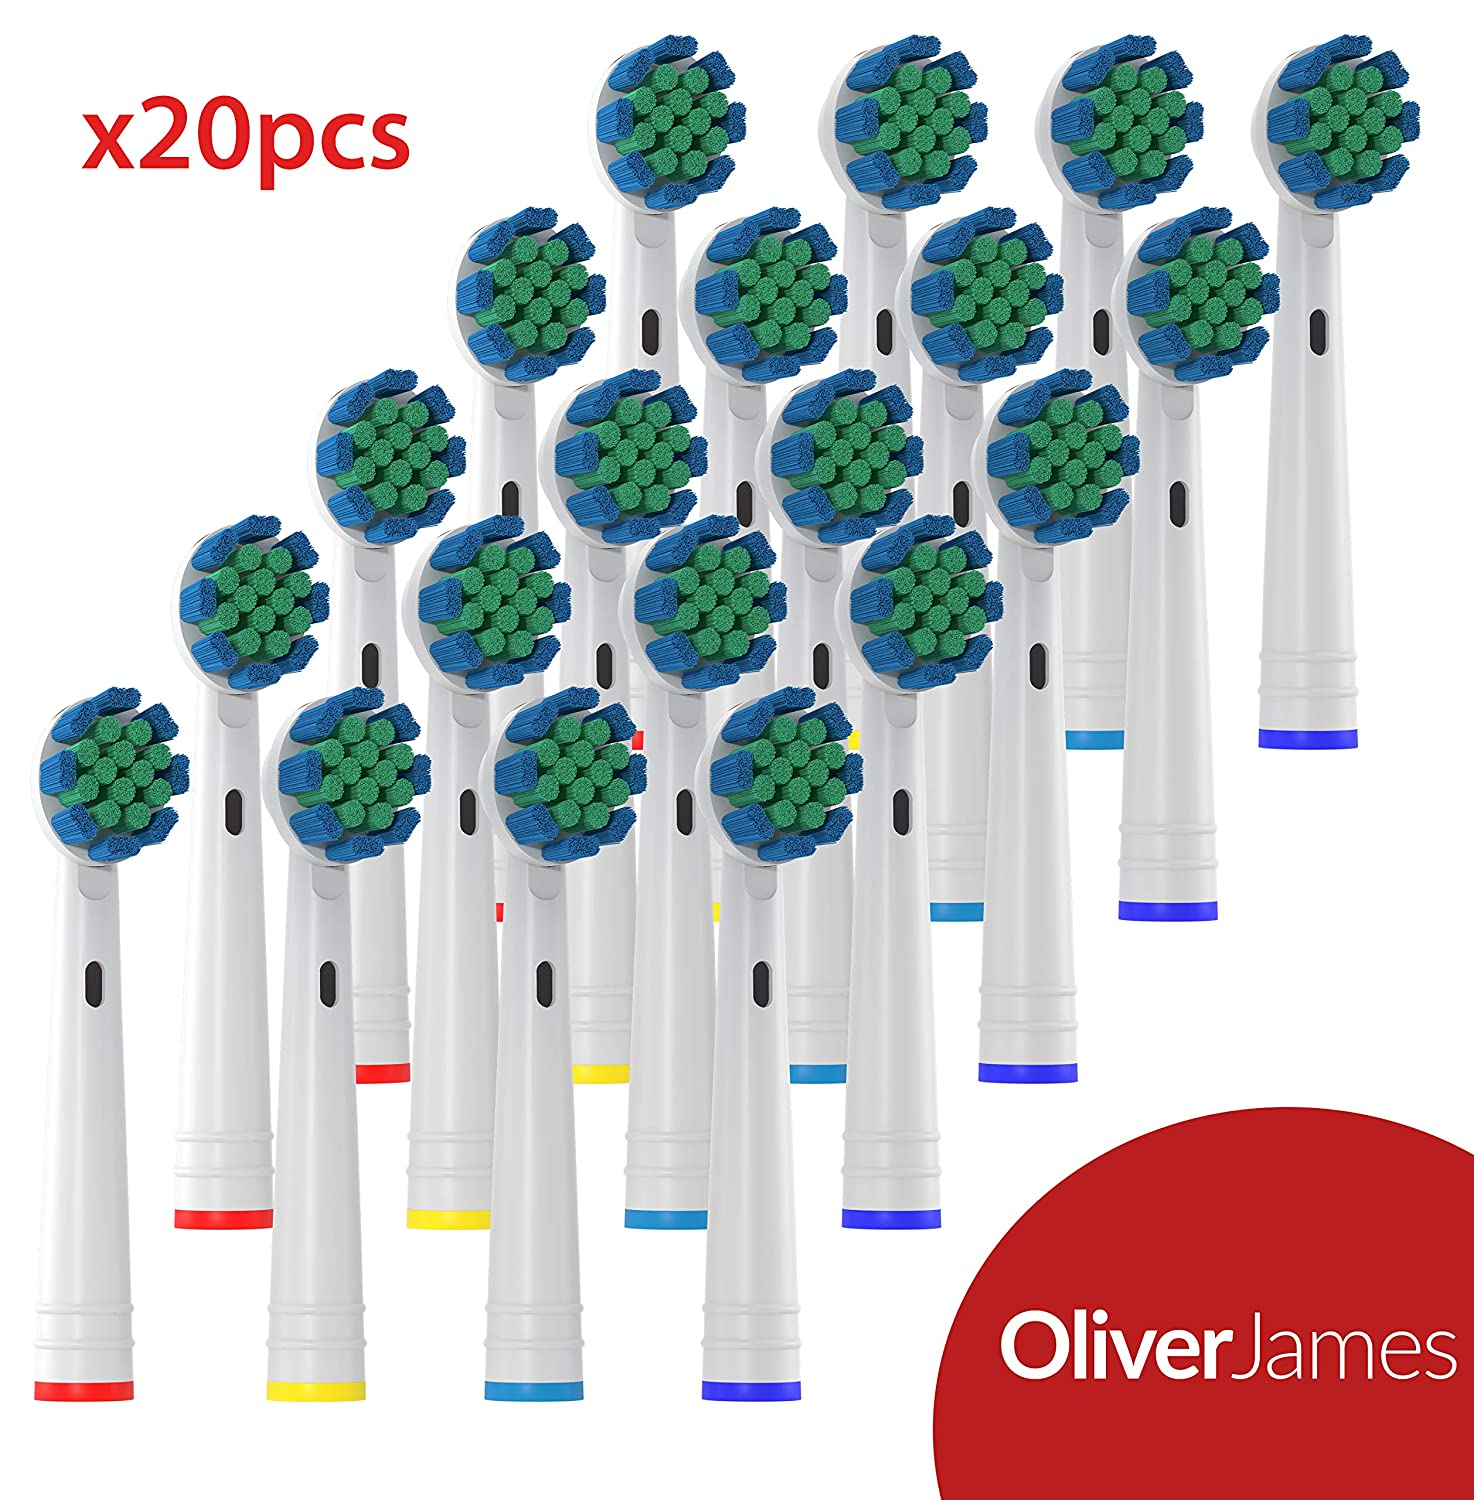 Oliver James Replacement Toothbrush heads - Compatible with Oral B Electric Toothbrushes - 20 pack LR-TXH4-VXUV